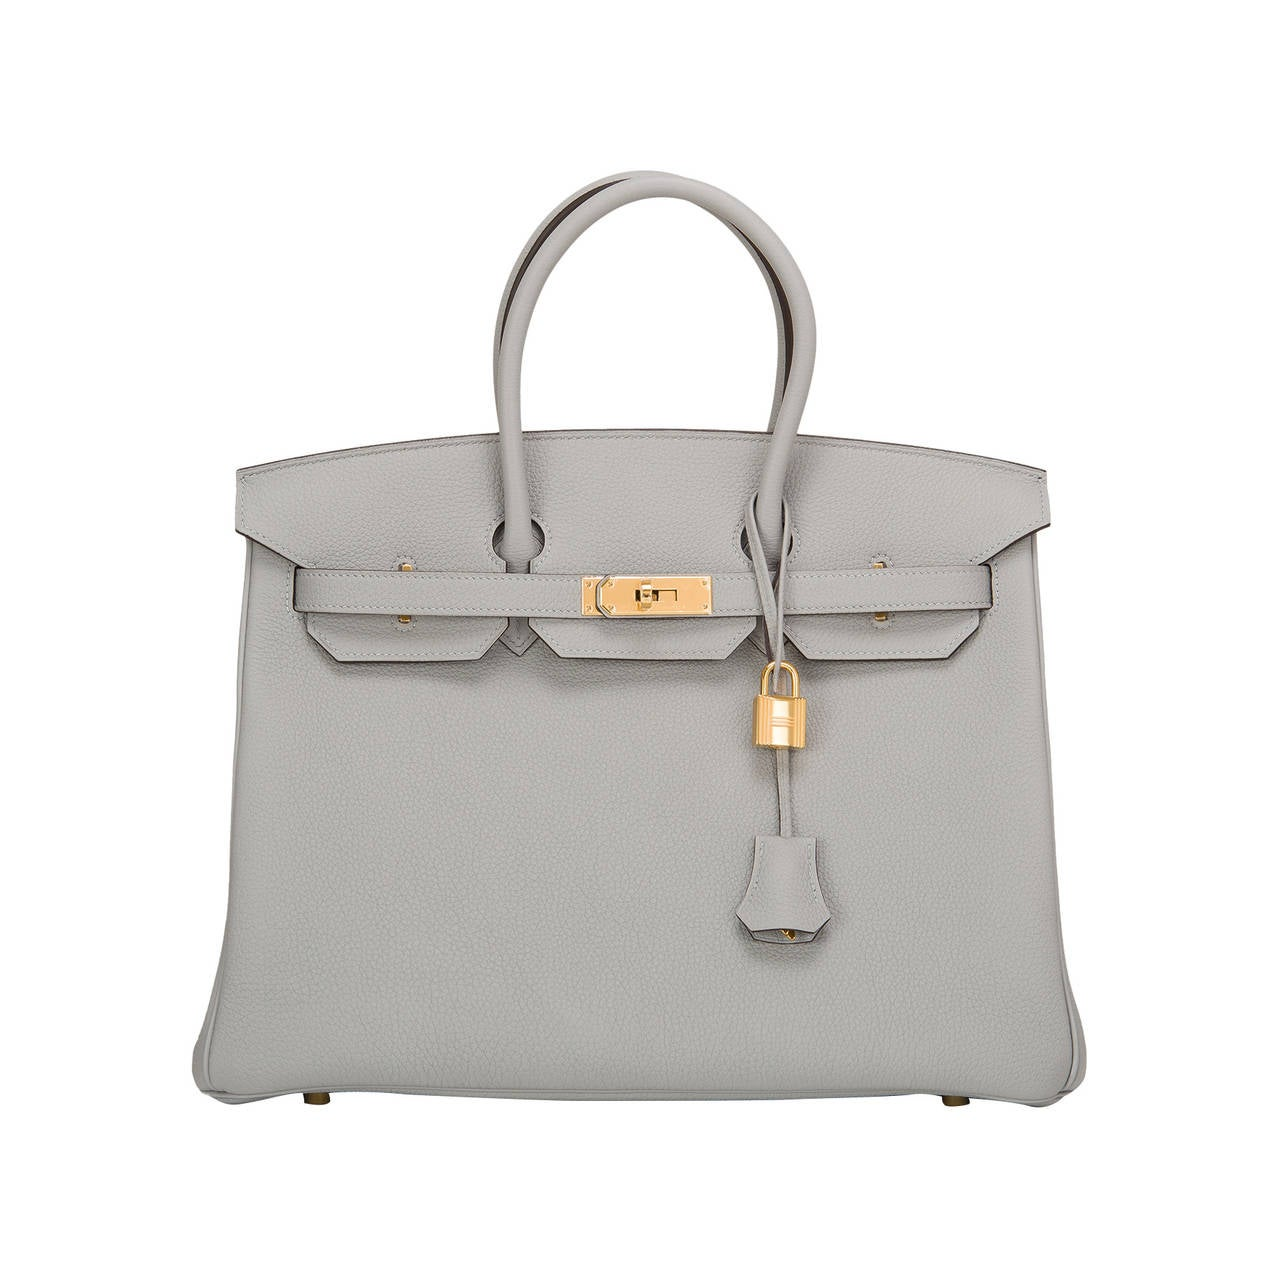 Hermes Blue Glacier Togo Birkin 35cm Gold Hardware For Sale